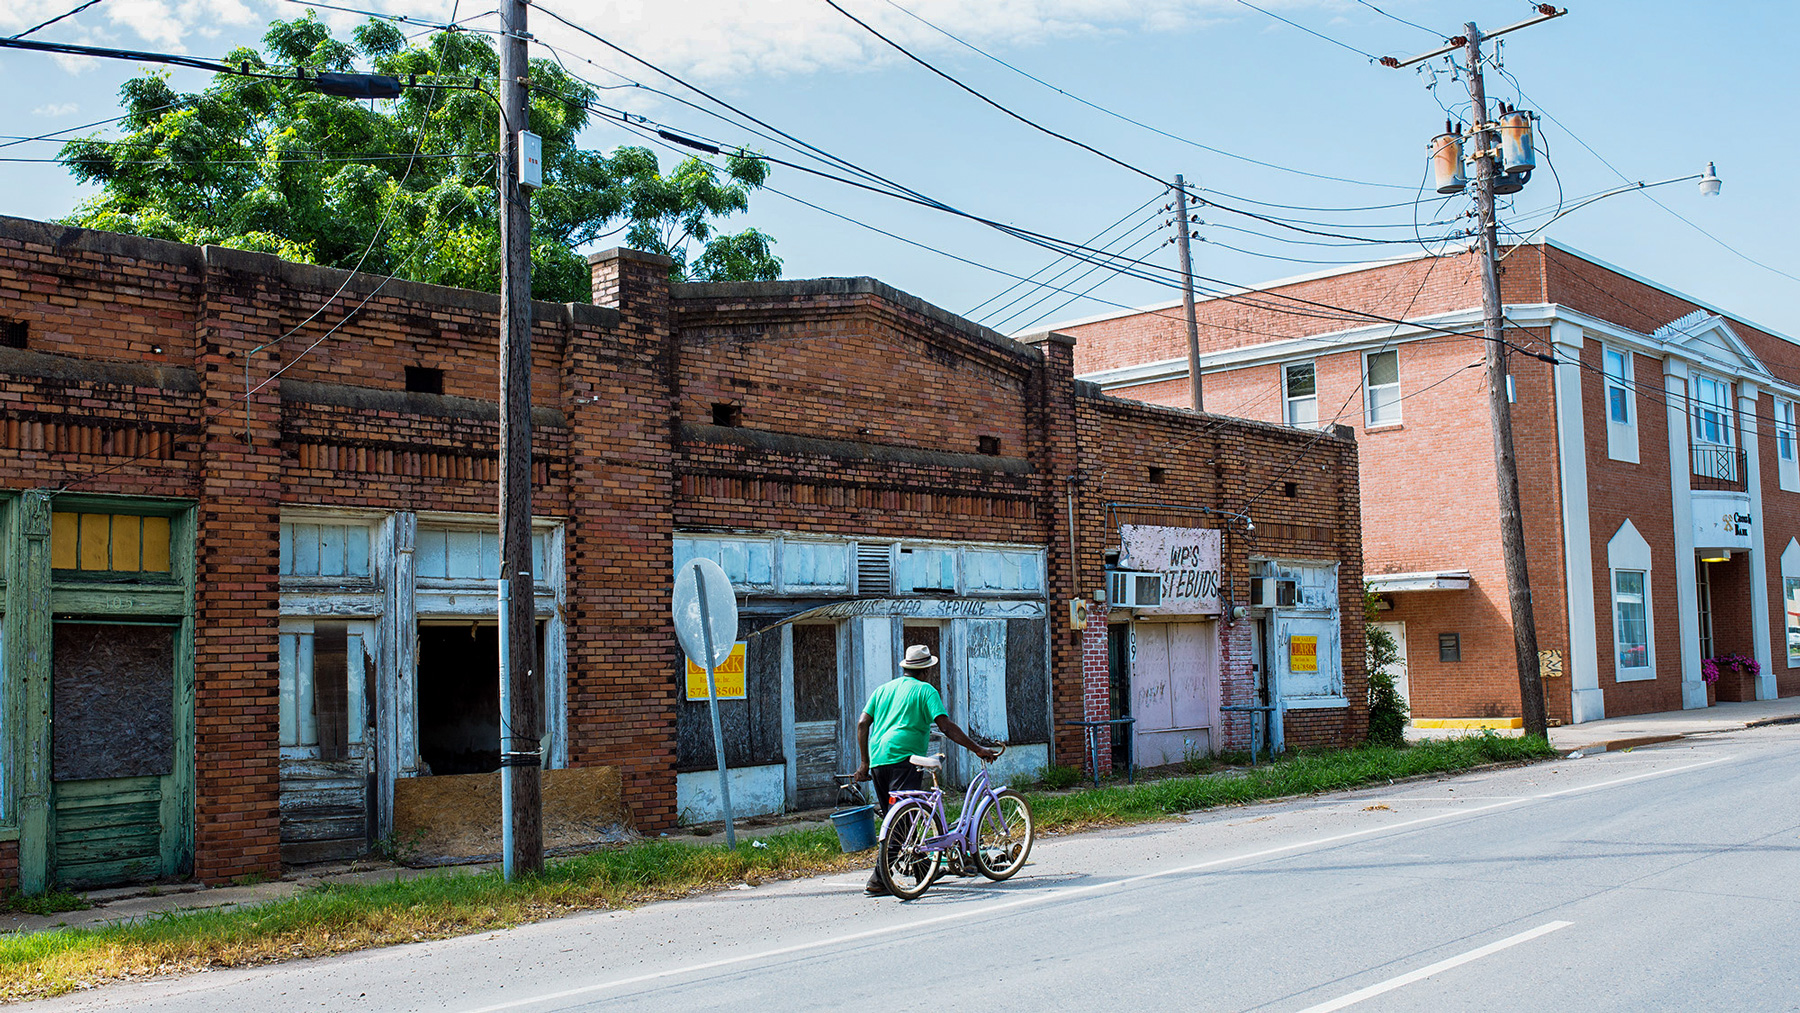 Over time, Tallulah, La., fell into economic hardship and many of its businesses closed. (Michael M. Santiago/News21)